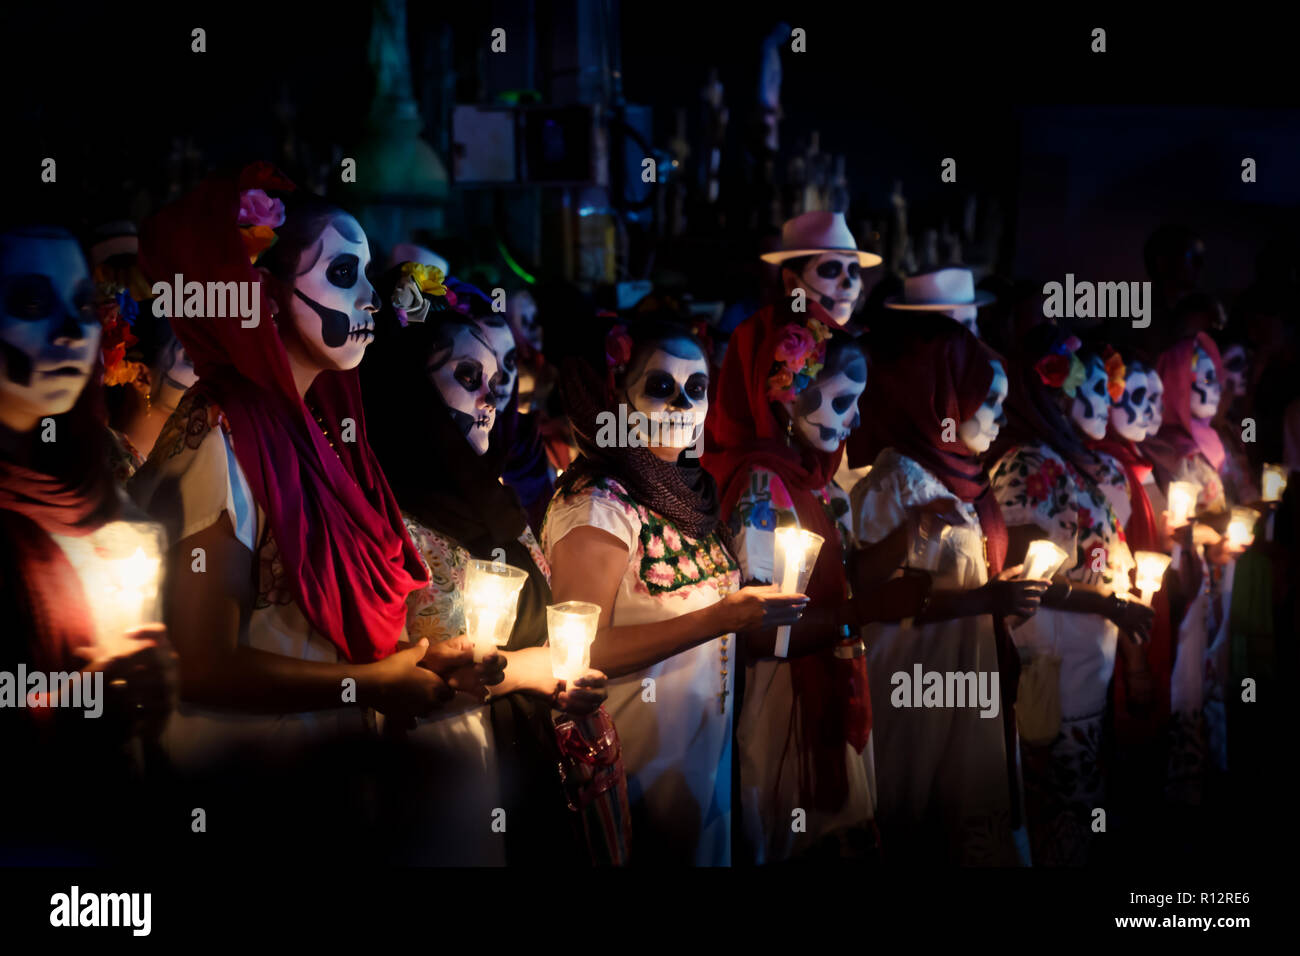 Merida, Cementerio General, Mexico - 31 October 2018: Line of customed women dressed as Catrinas with skull make-up and candles at the event for dia d - Stock Image